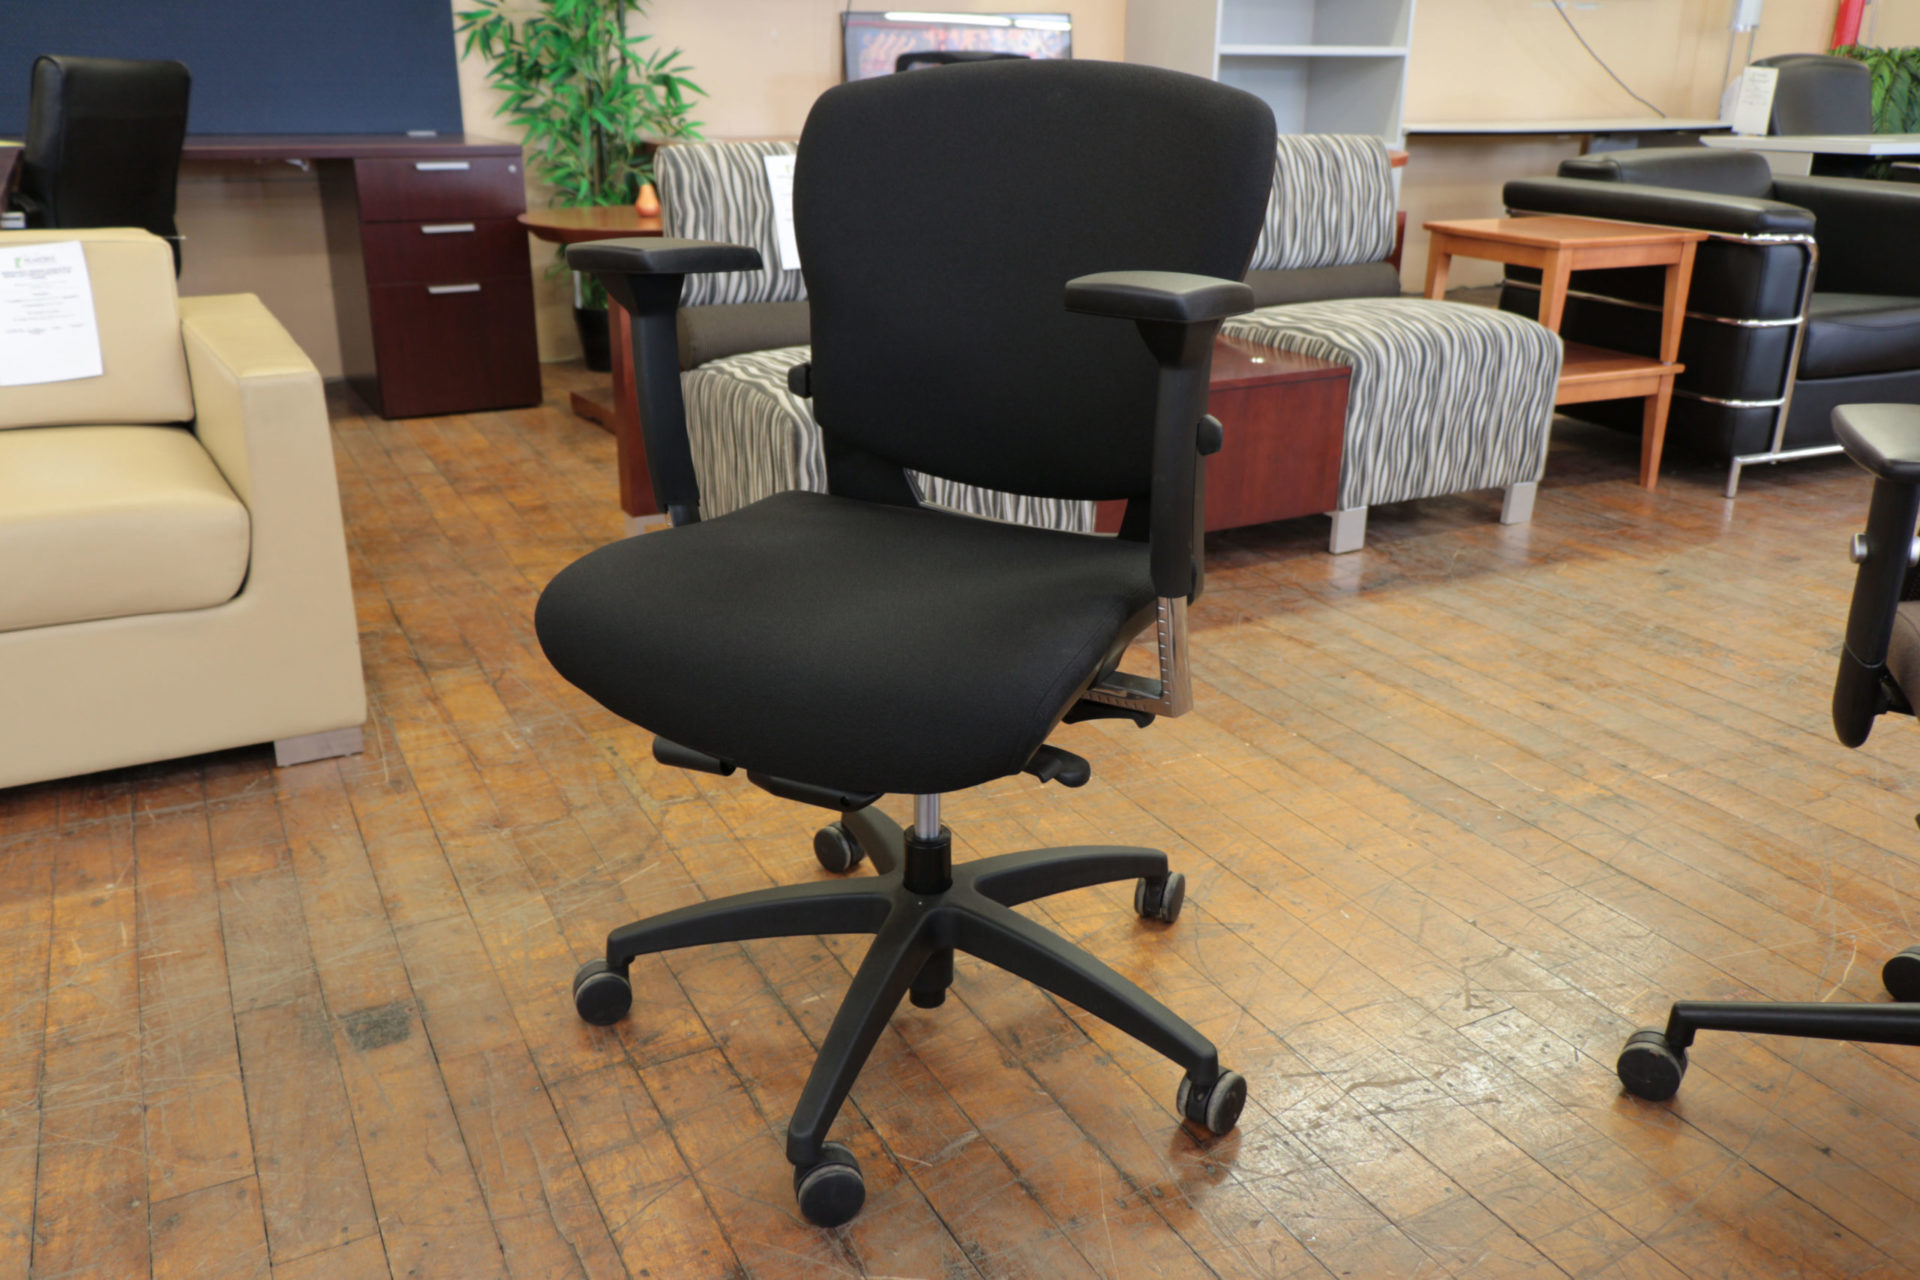 peartreeofficefurniture_peartreeofficefurniture_peartreeofficefurniture_img_8711.jpg